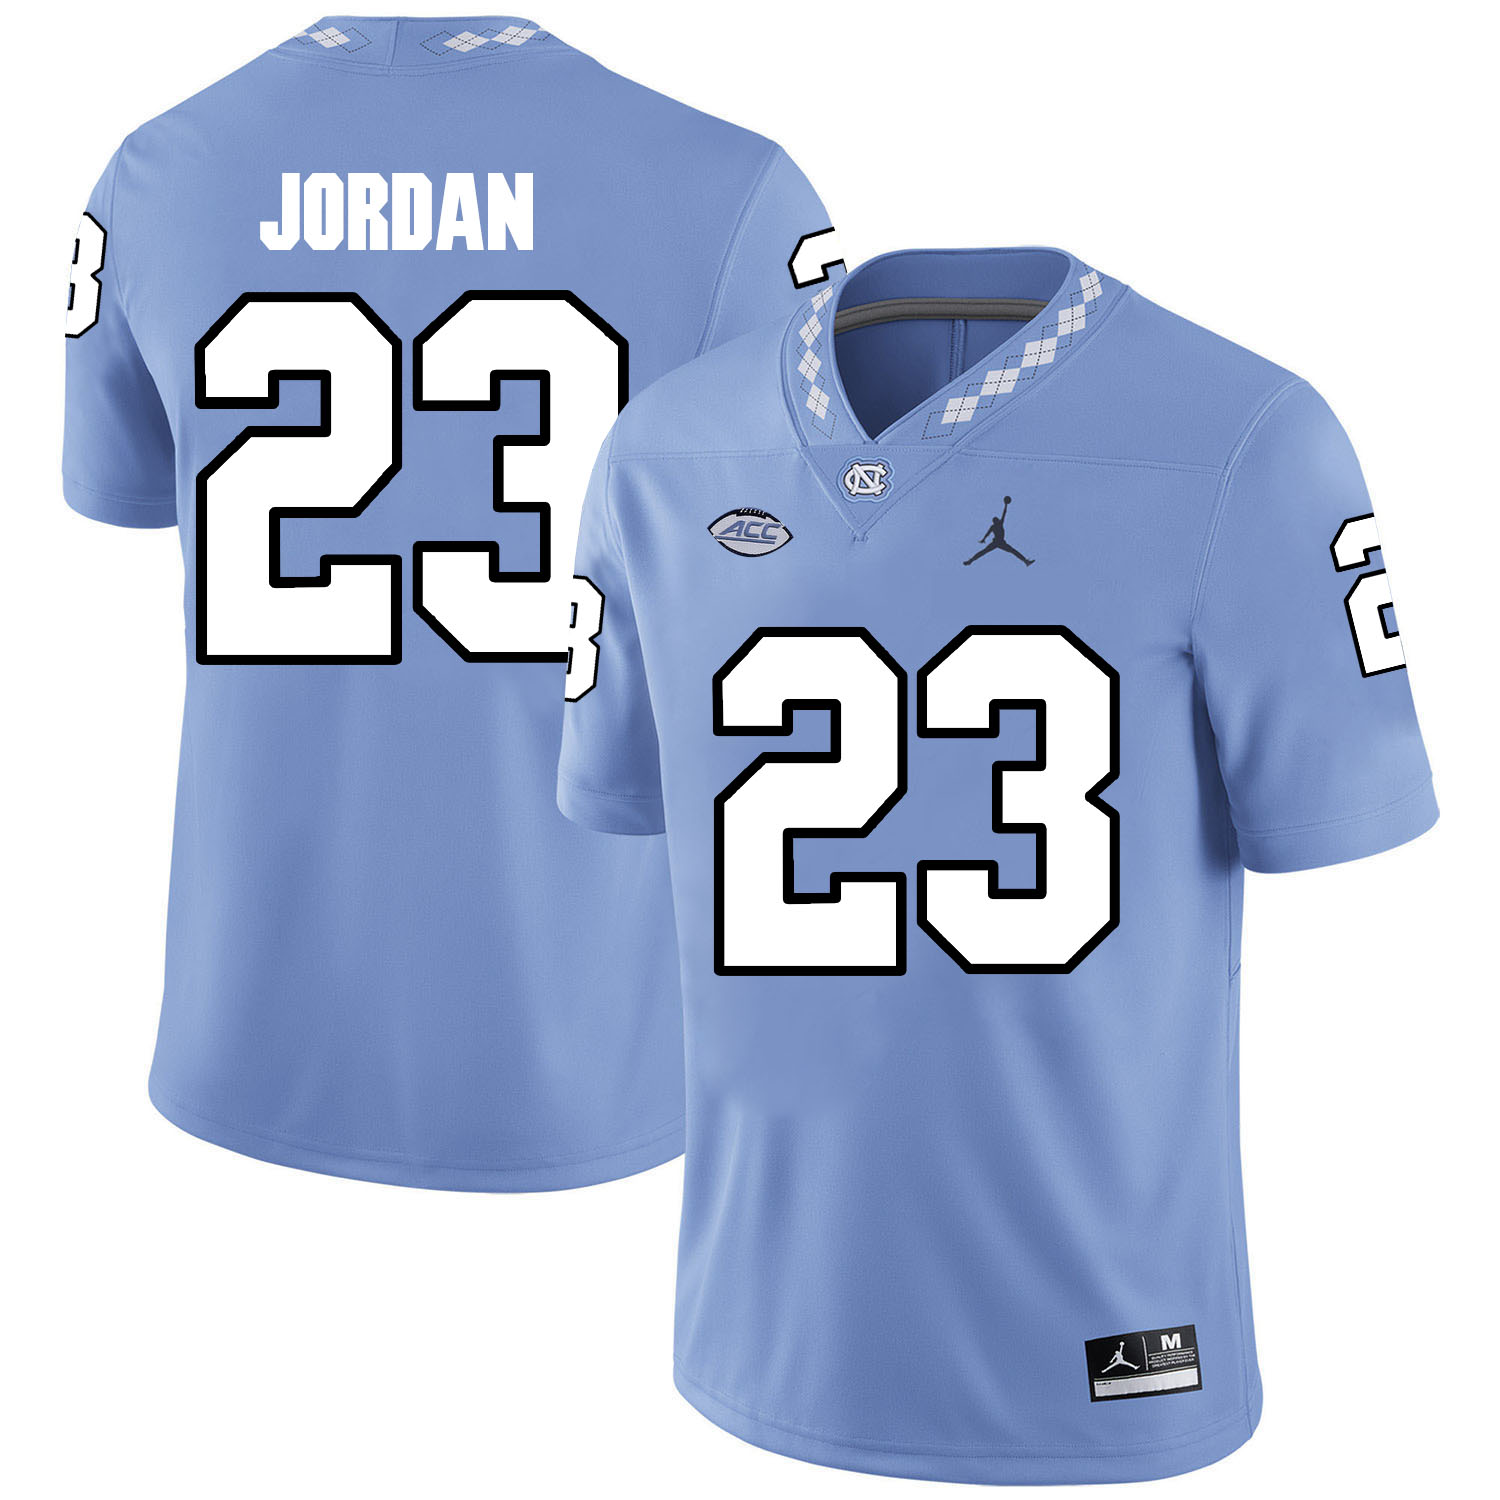 North Carolina Tar Heels 23 Michael Jordan Blue College Football Jersey